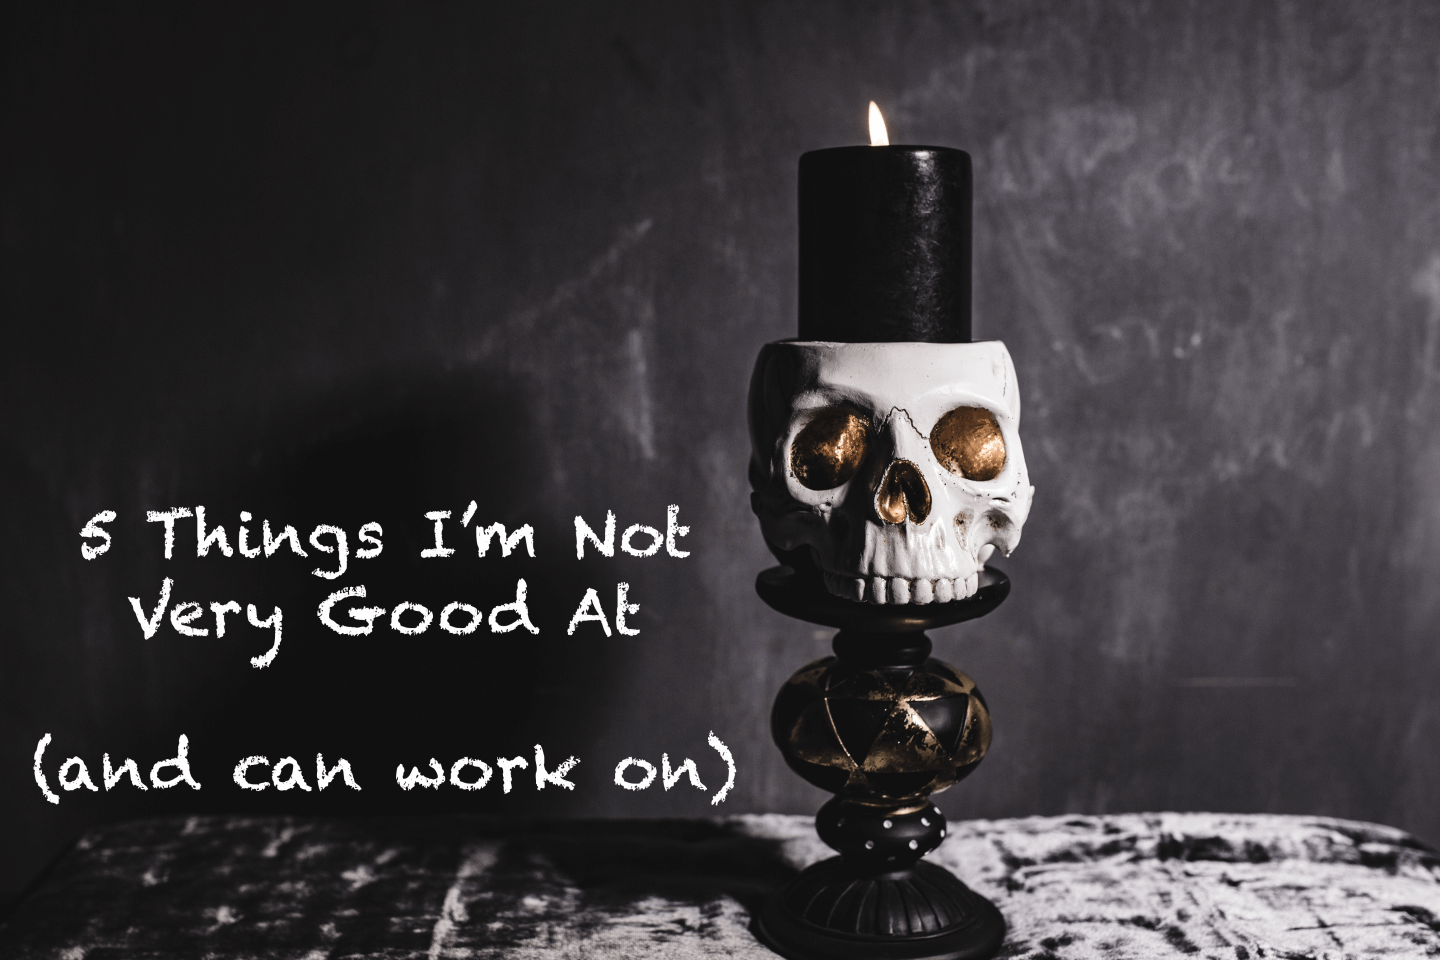 5 Things I'm Not Very Good At (and can work on)